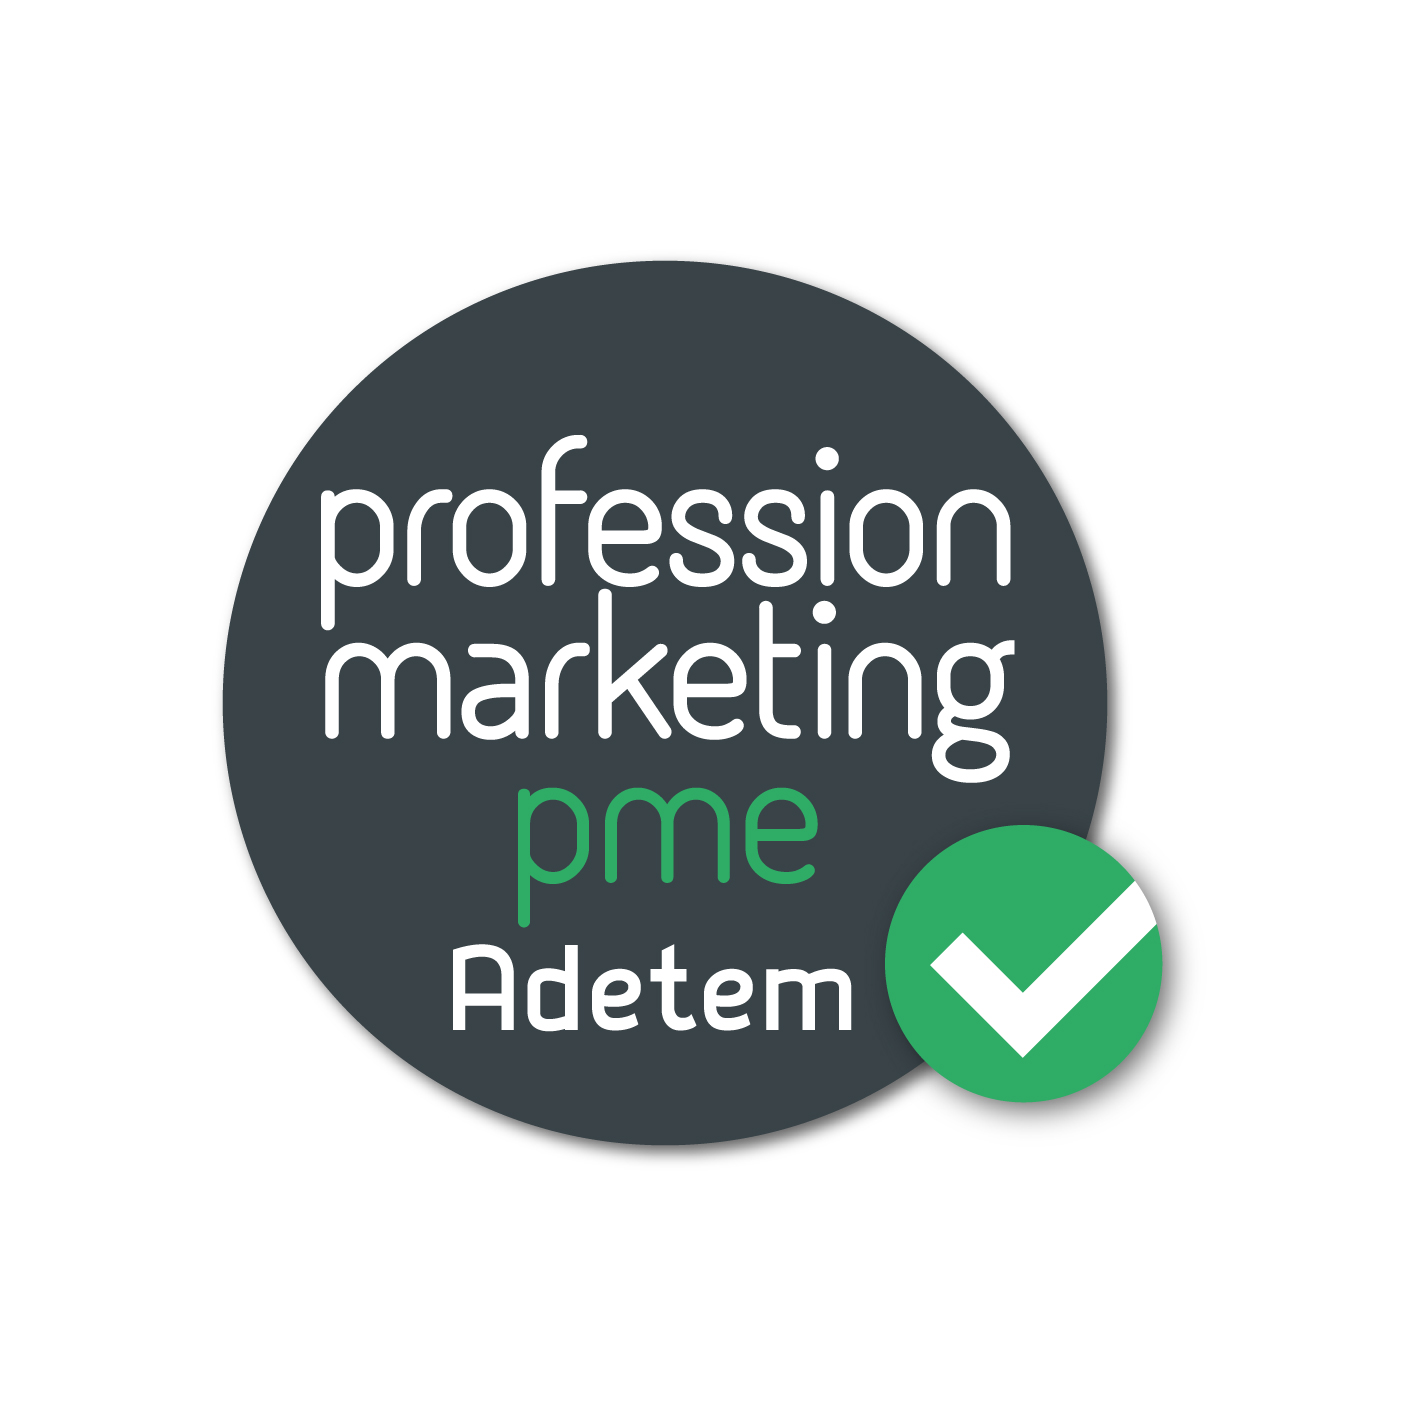 adh u00e9rente  u00e0 la marque collective  u0026quot profession marketing pme u0026quot  - cv